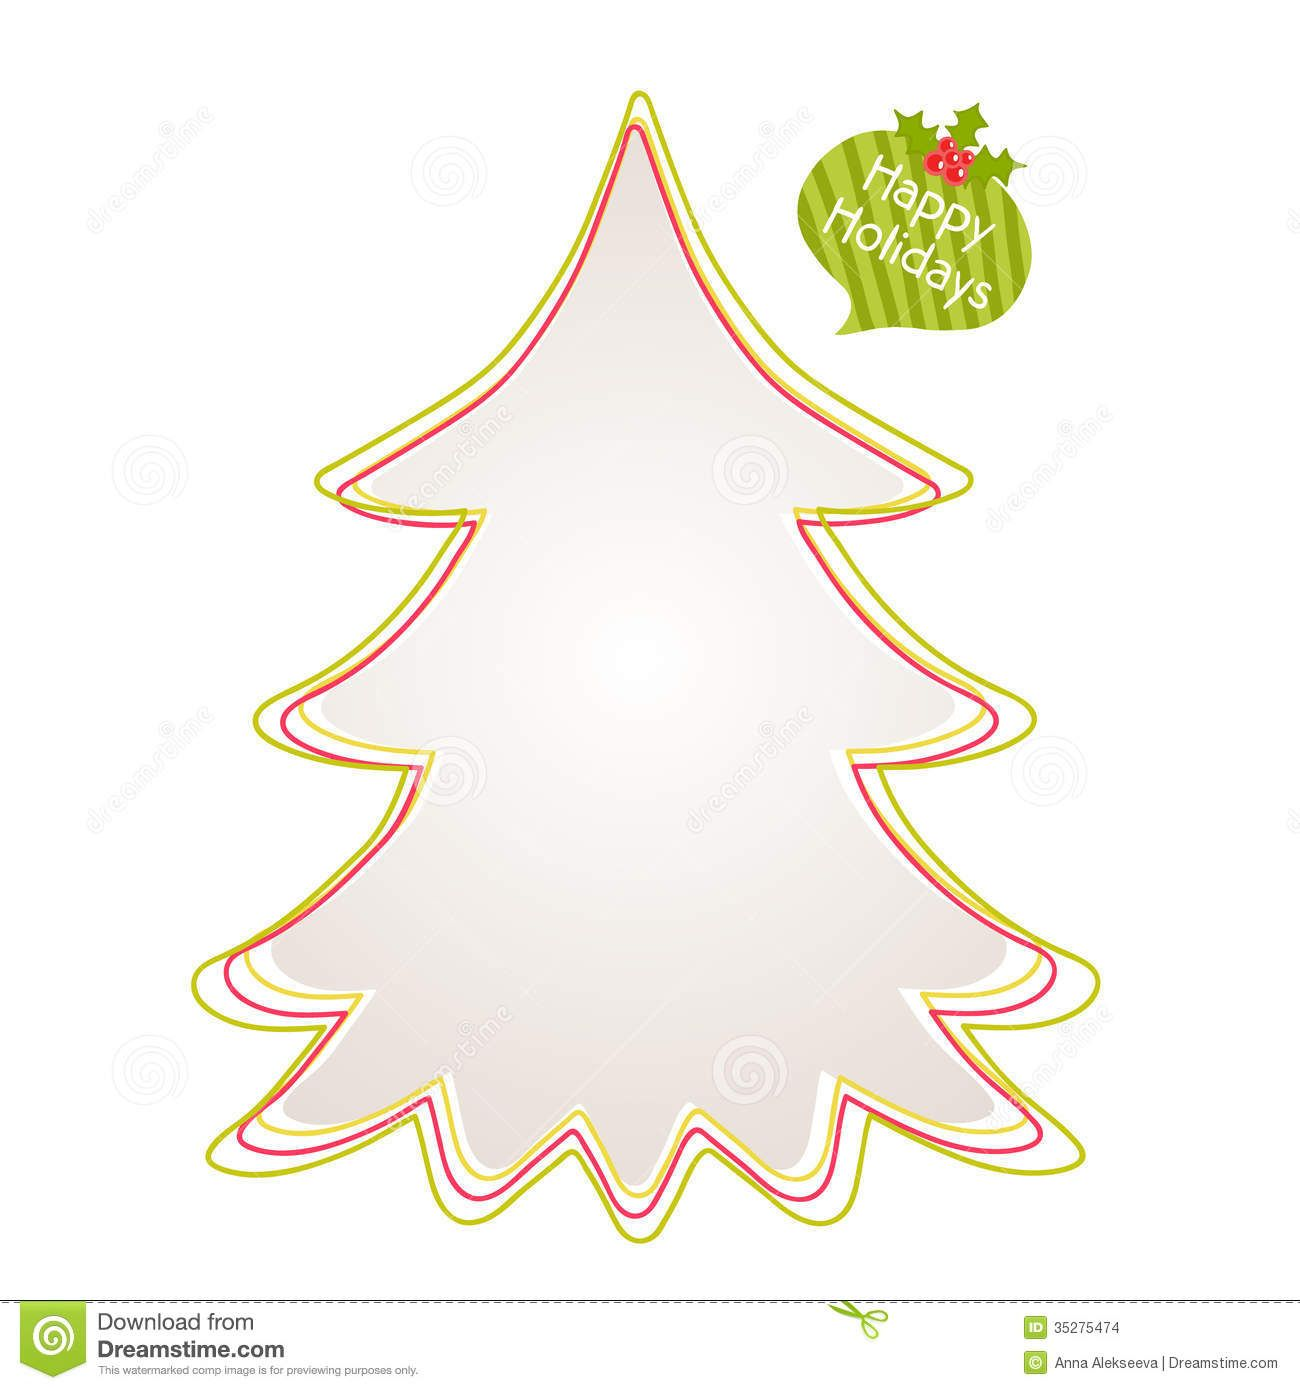 Christmas Trees Outline Google Search Tree Outline Christmas Tree Outline Clip Art